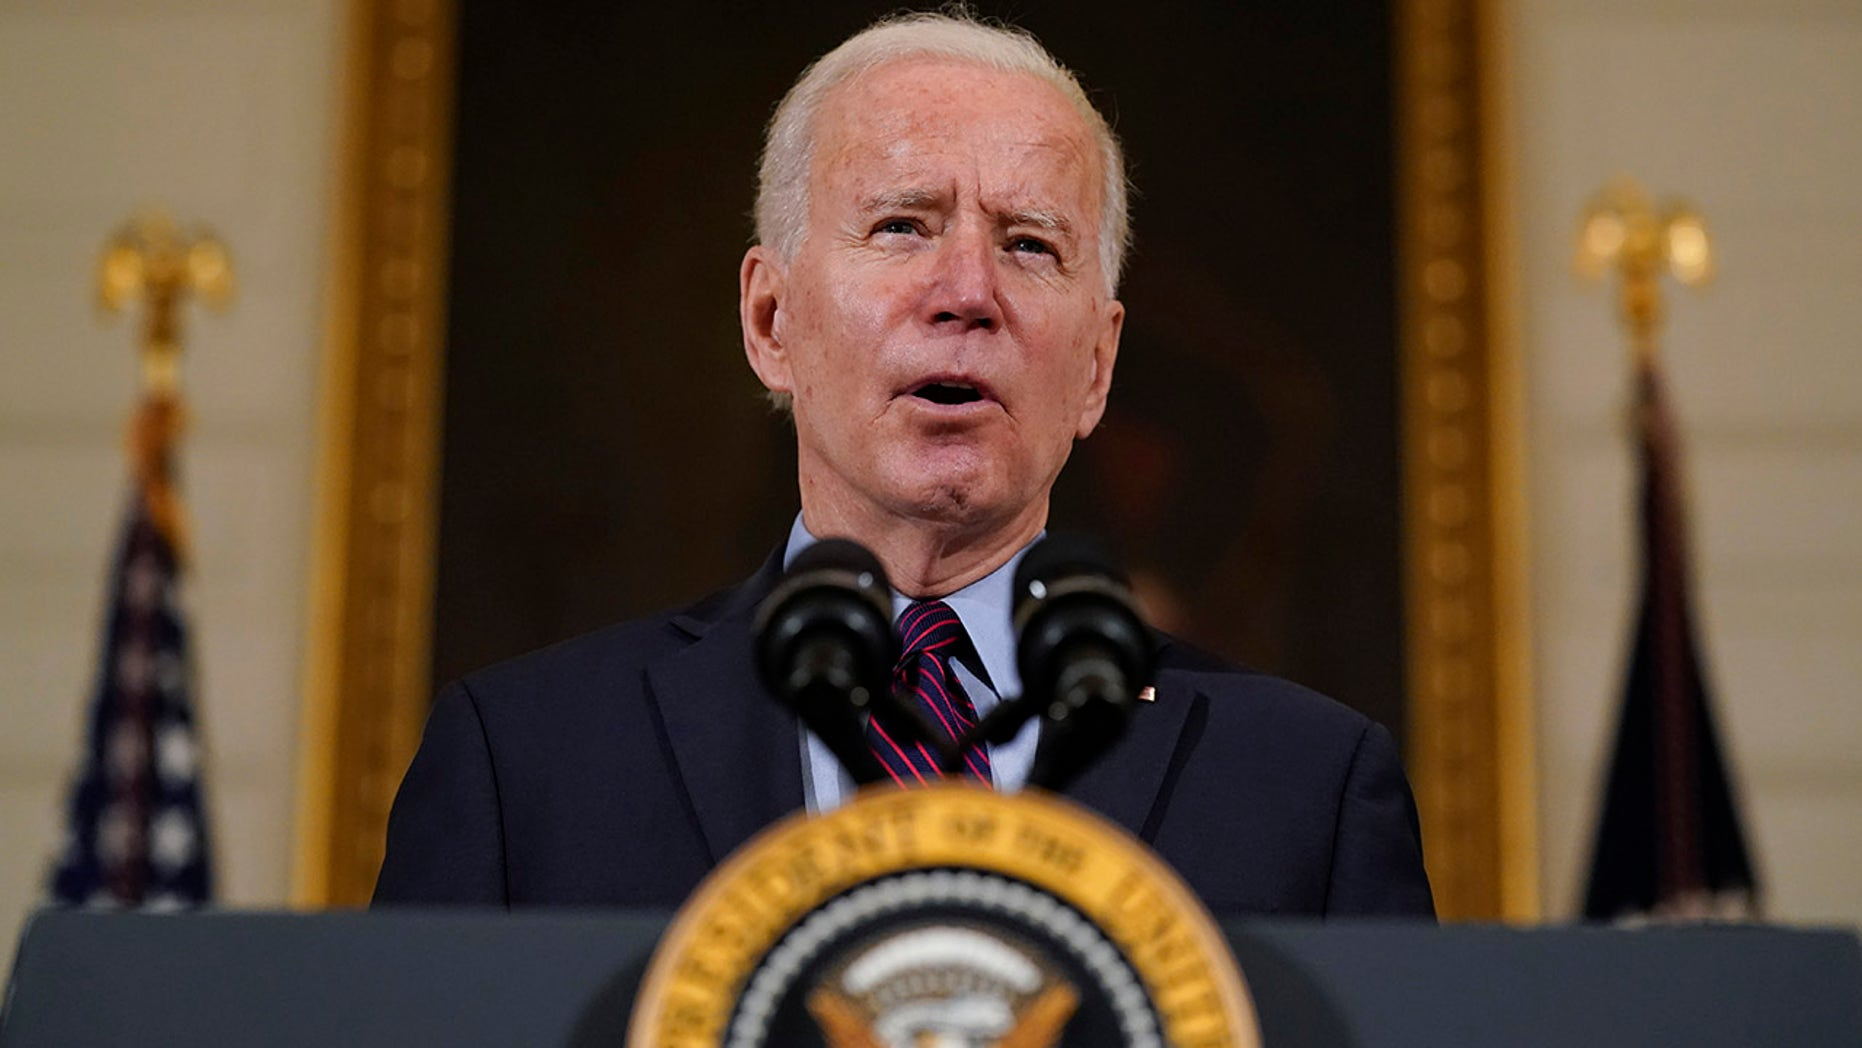 'God' Excluded from Biden's National Day of Prayer Proclamation